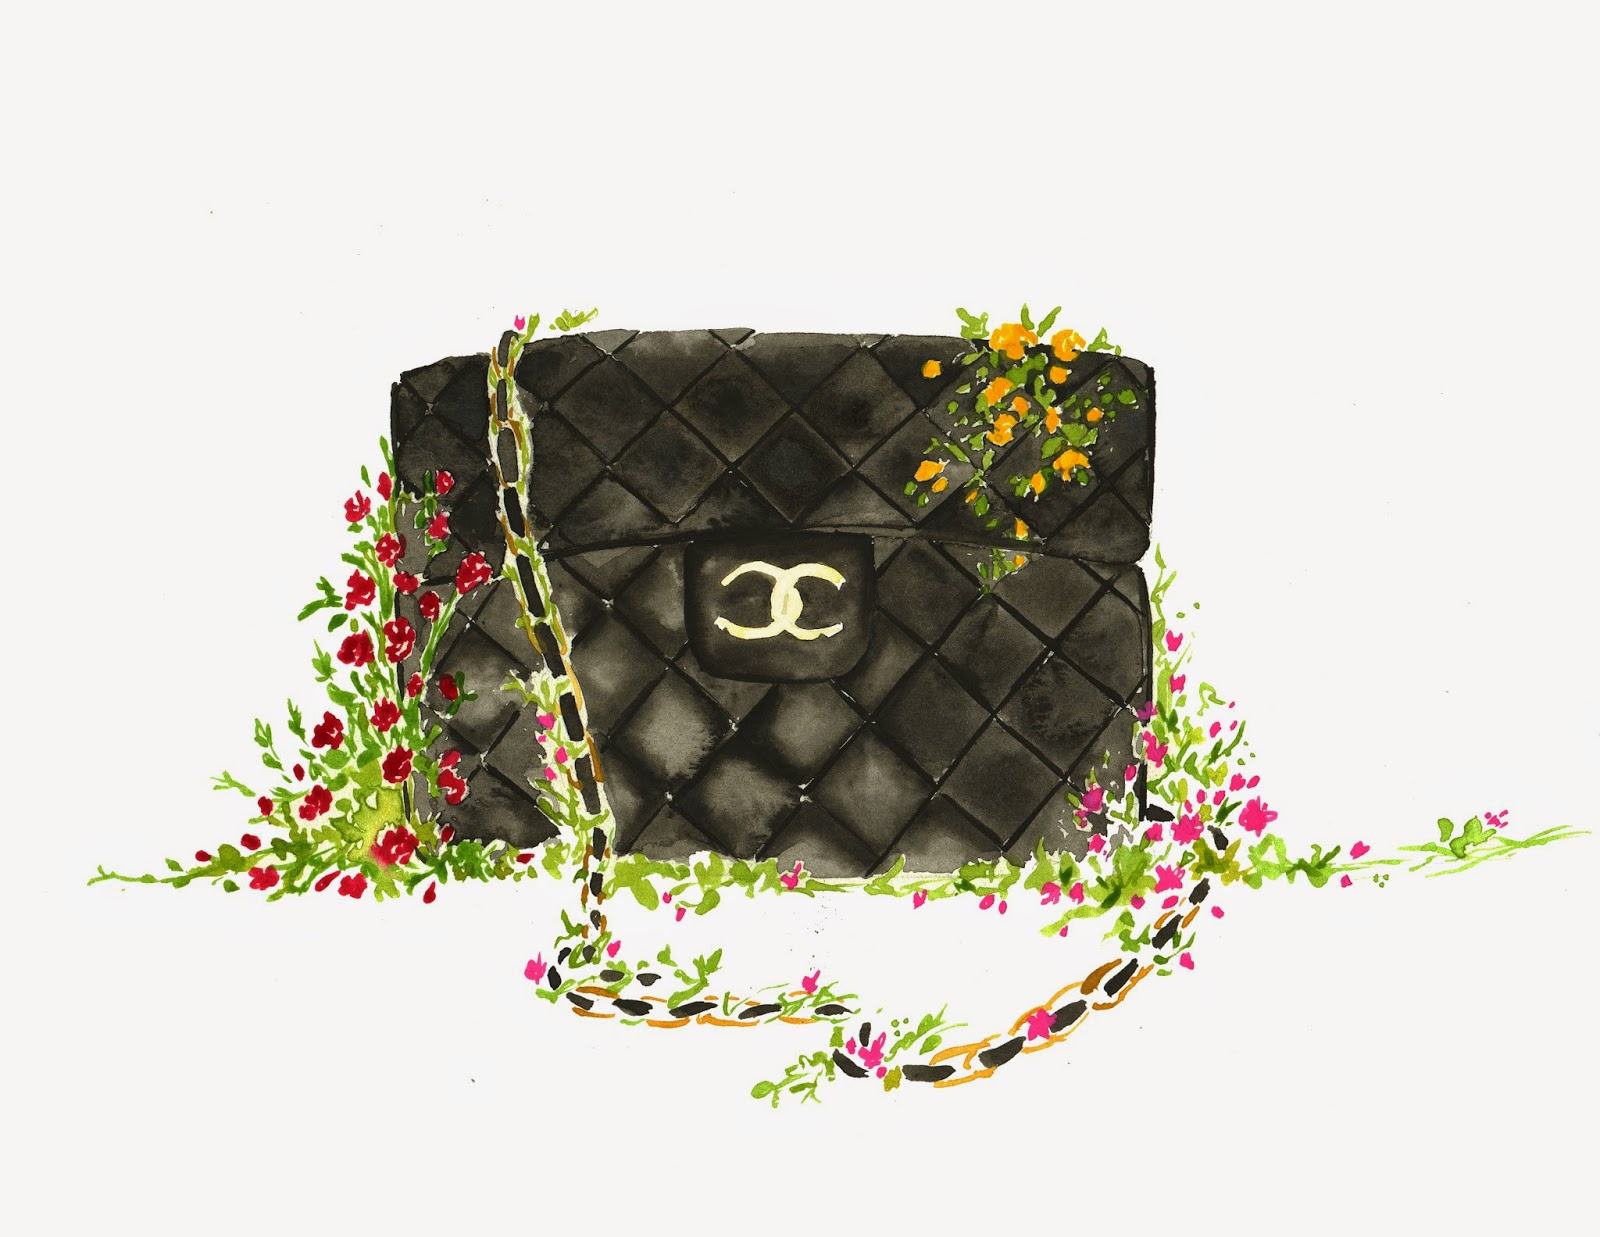 Chanel Bag Illustration Classic Chanel Bag Covered